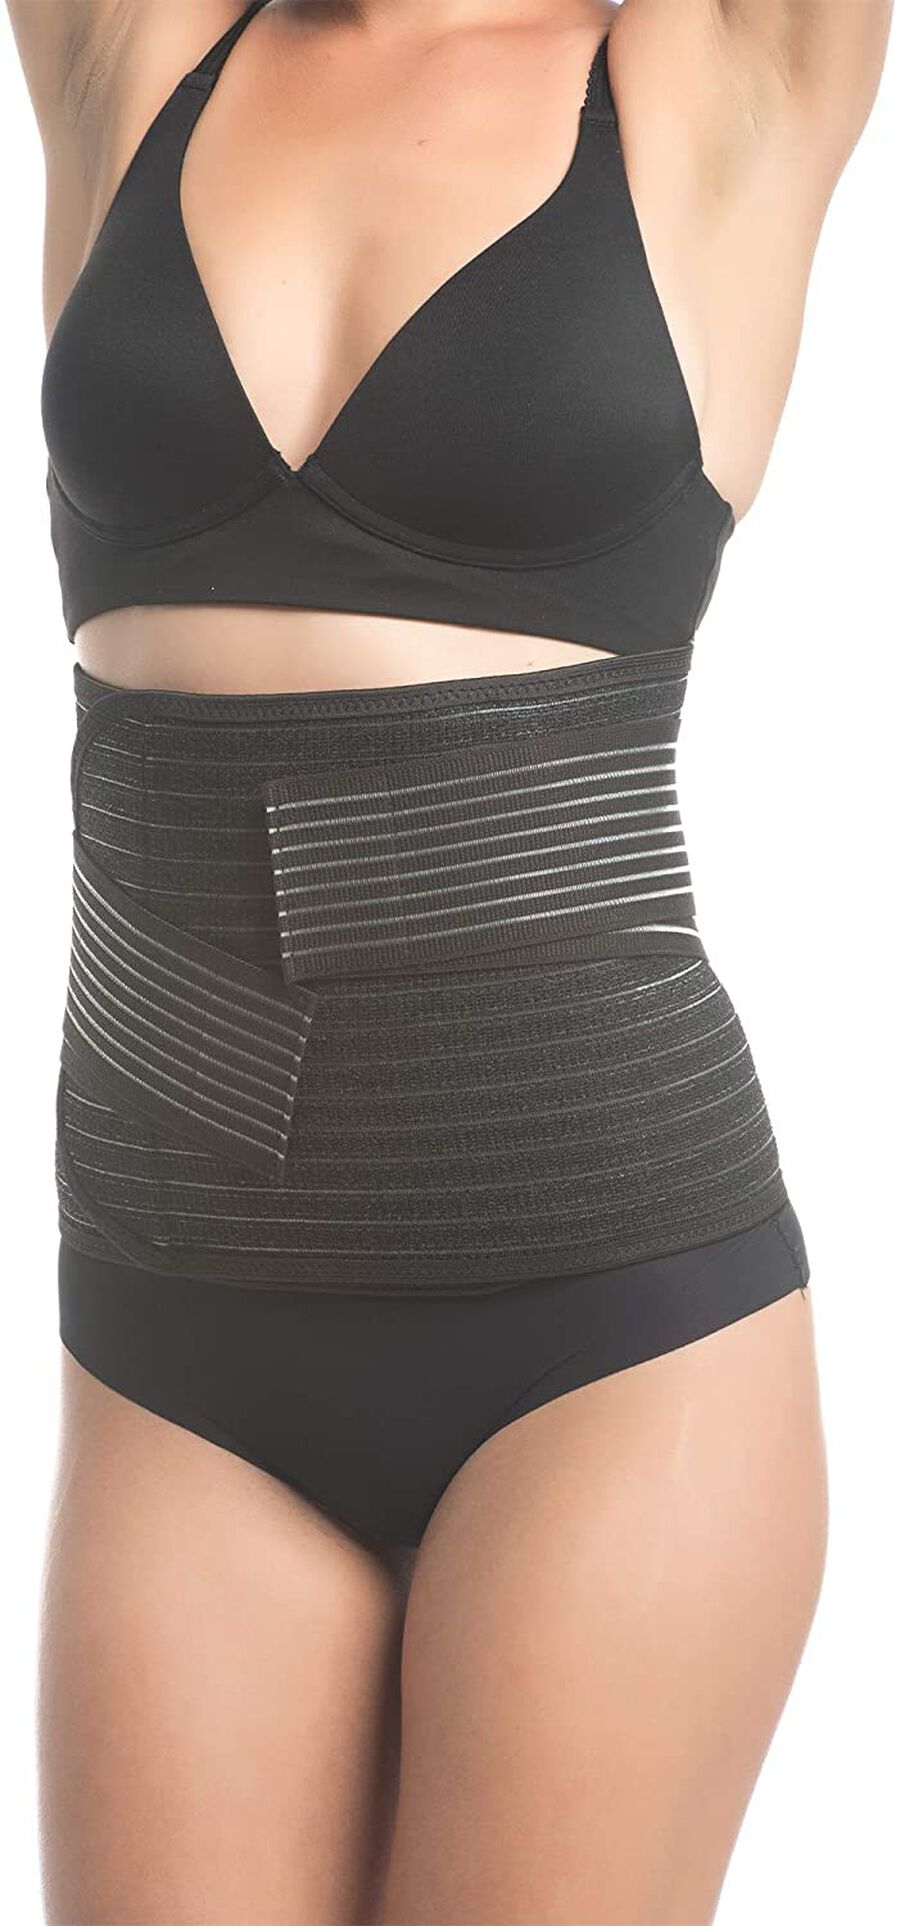 Shrinkx Belly Postpartum Belly Wrap with Bamboo Charcoal Fiber, Black, , large image number 1